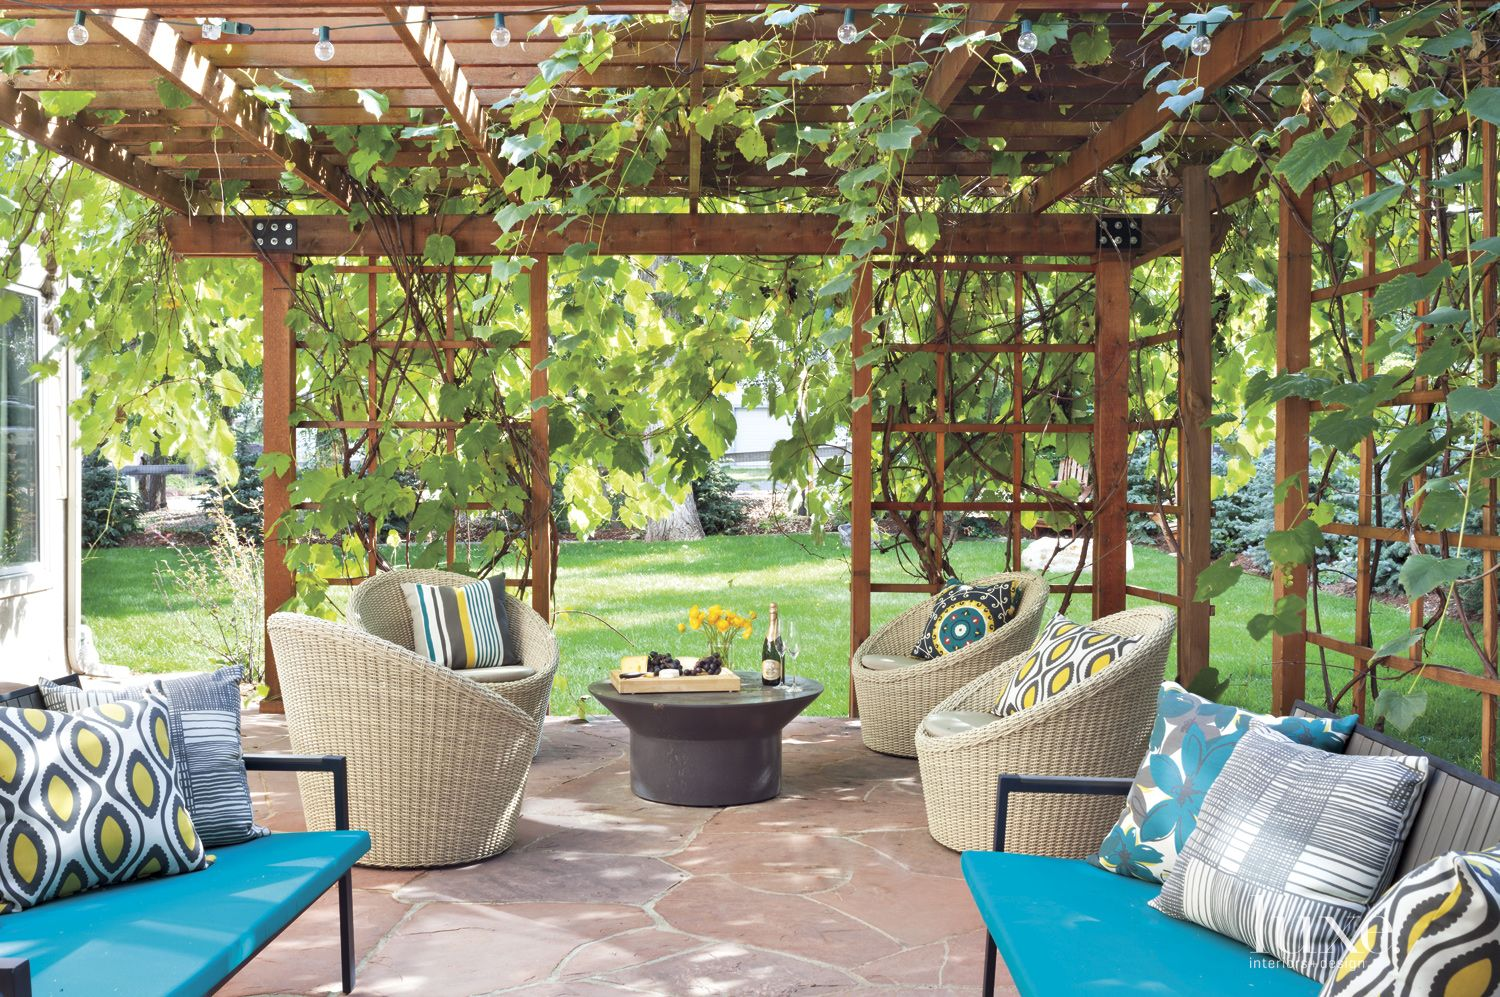 Flagstone Patio with Eclectic Furnishings